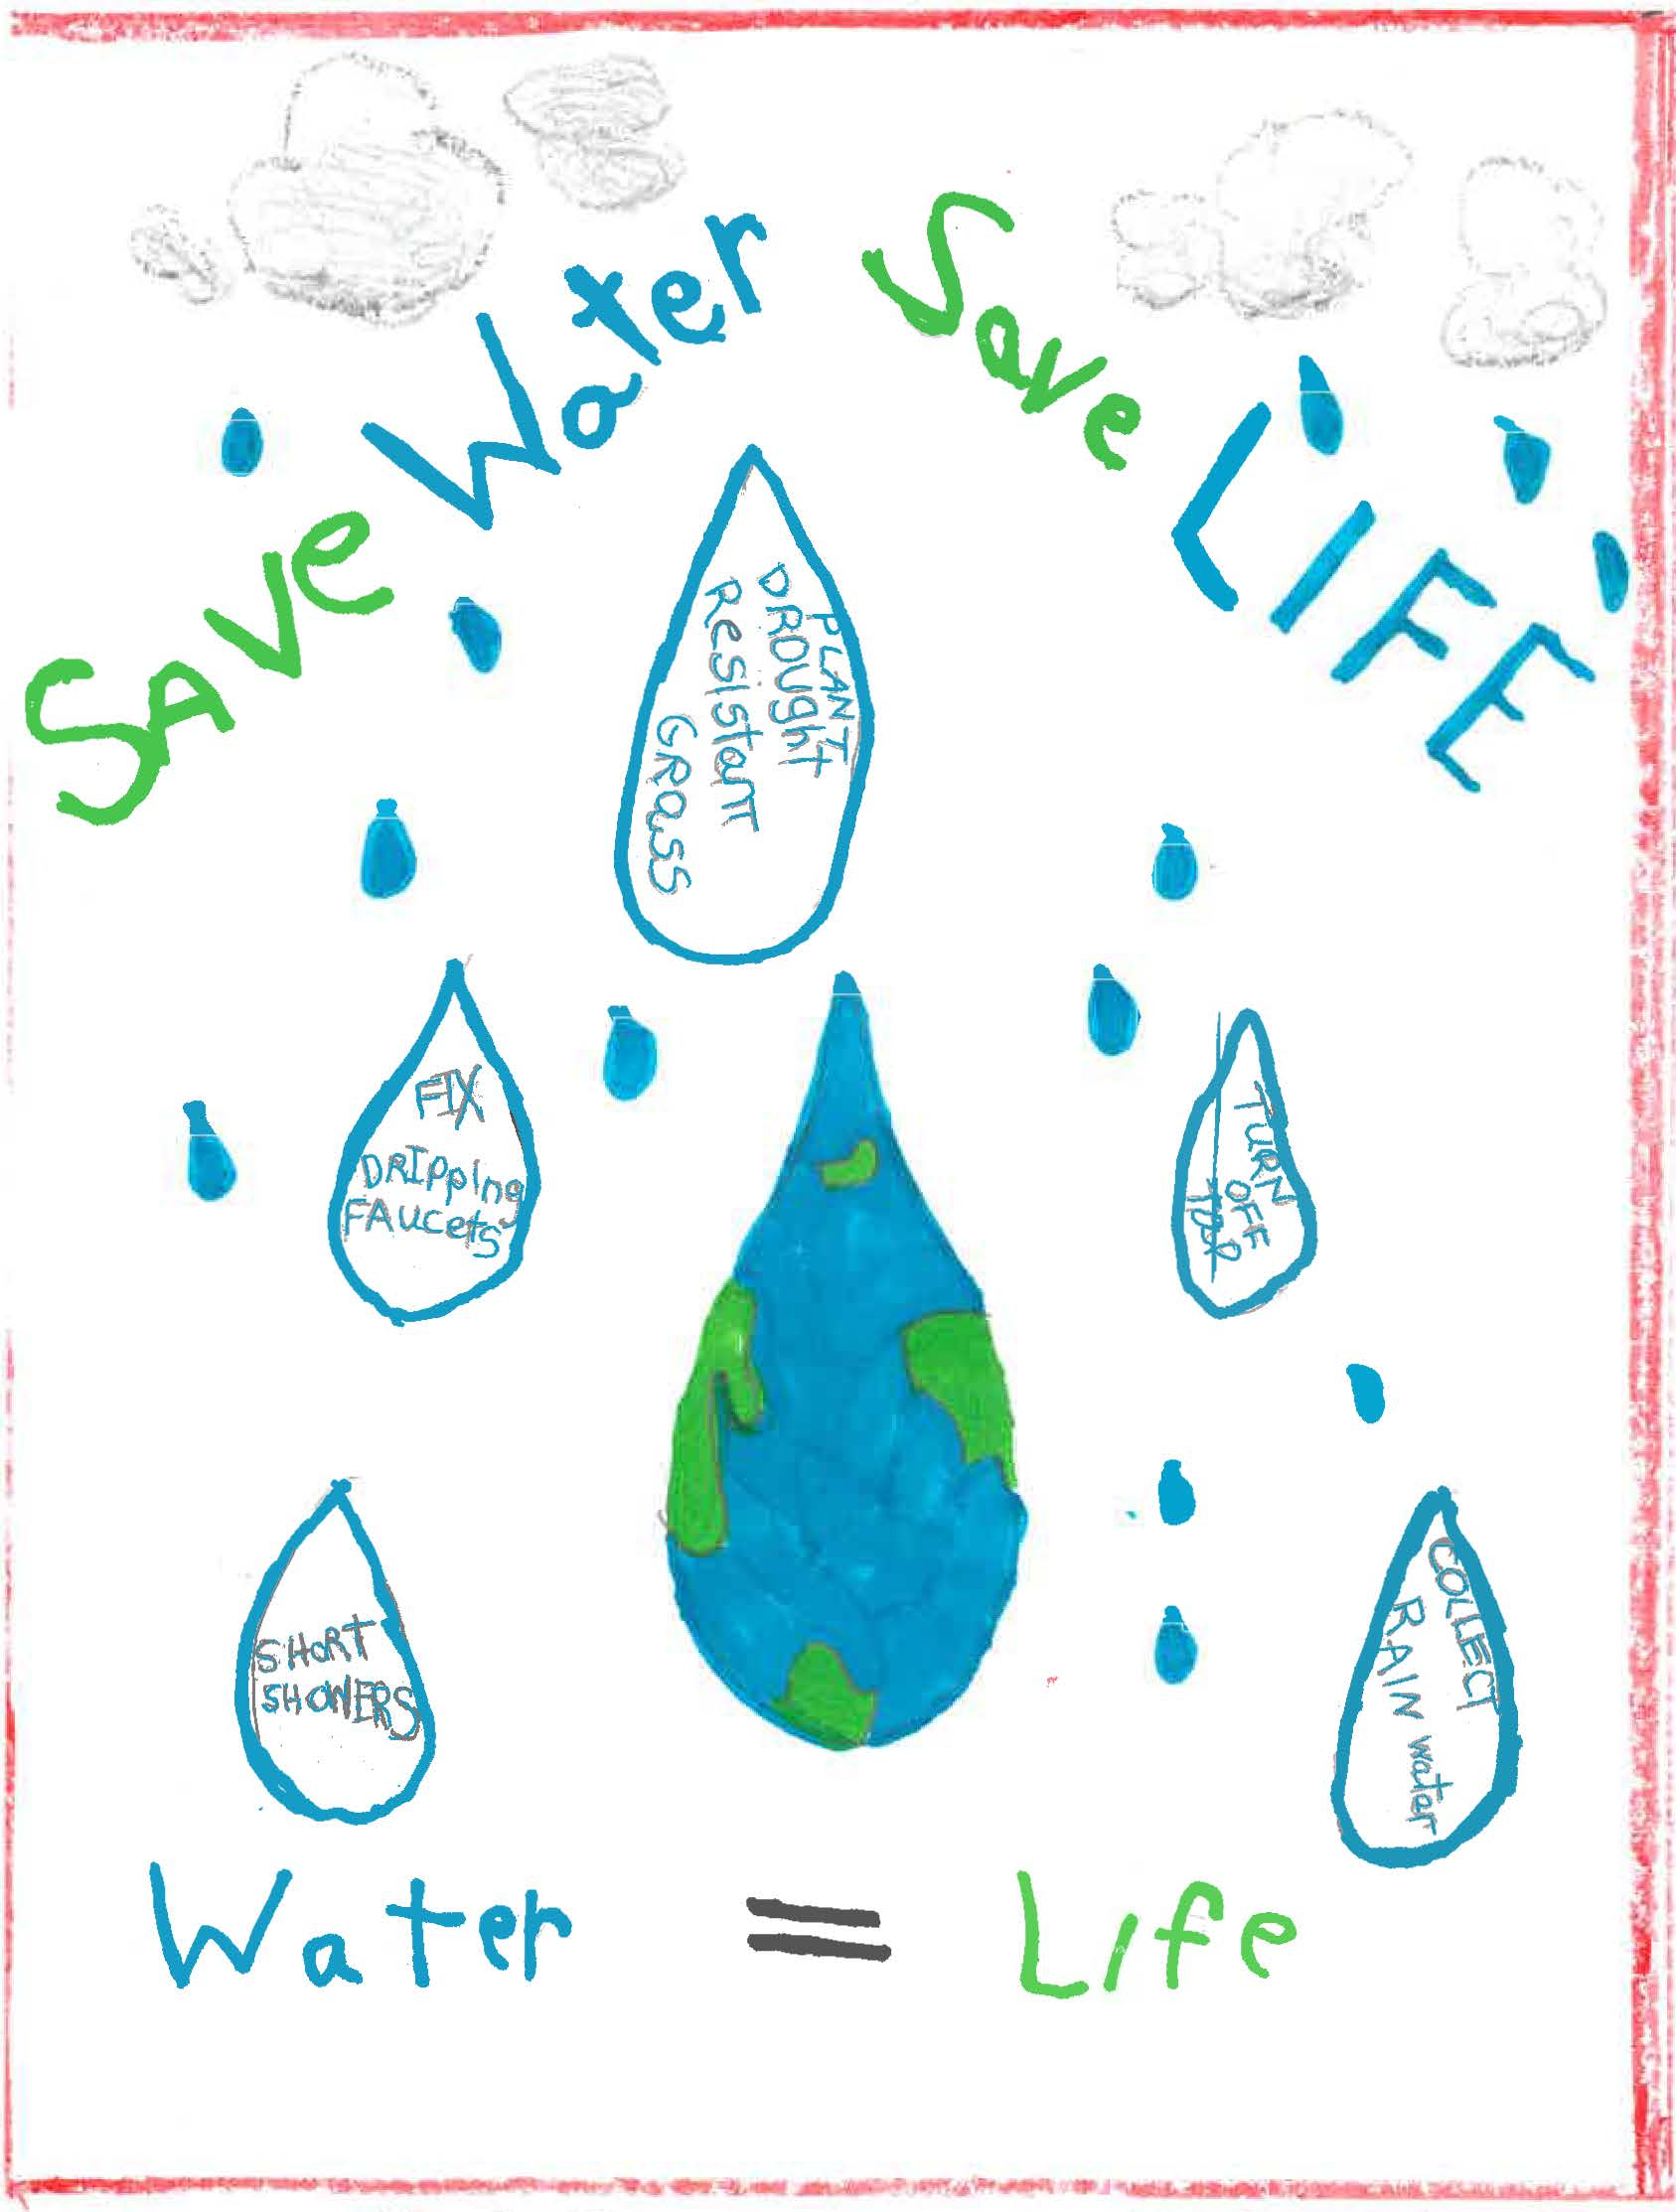 Oldsmar Drop Savers poster contest Division 1 poster winner